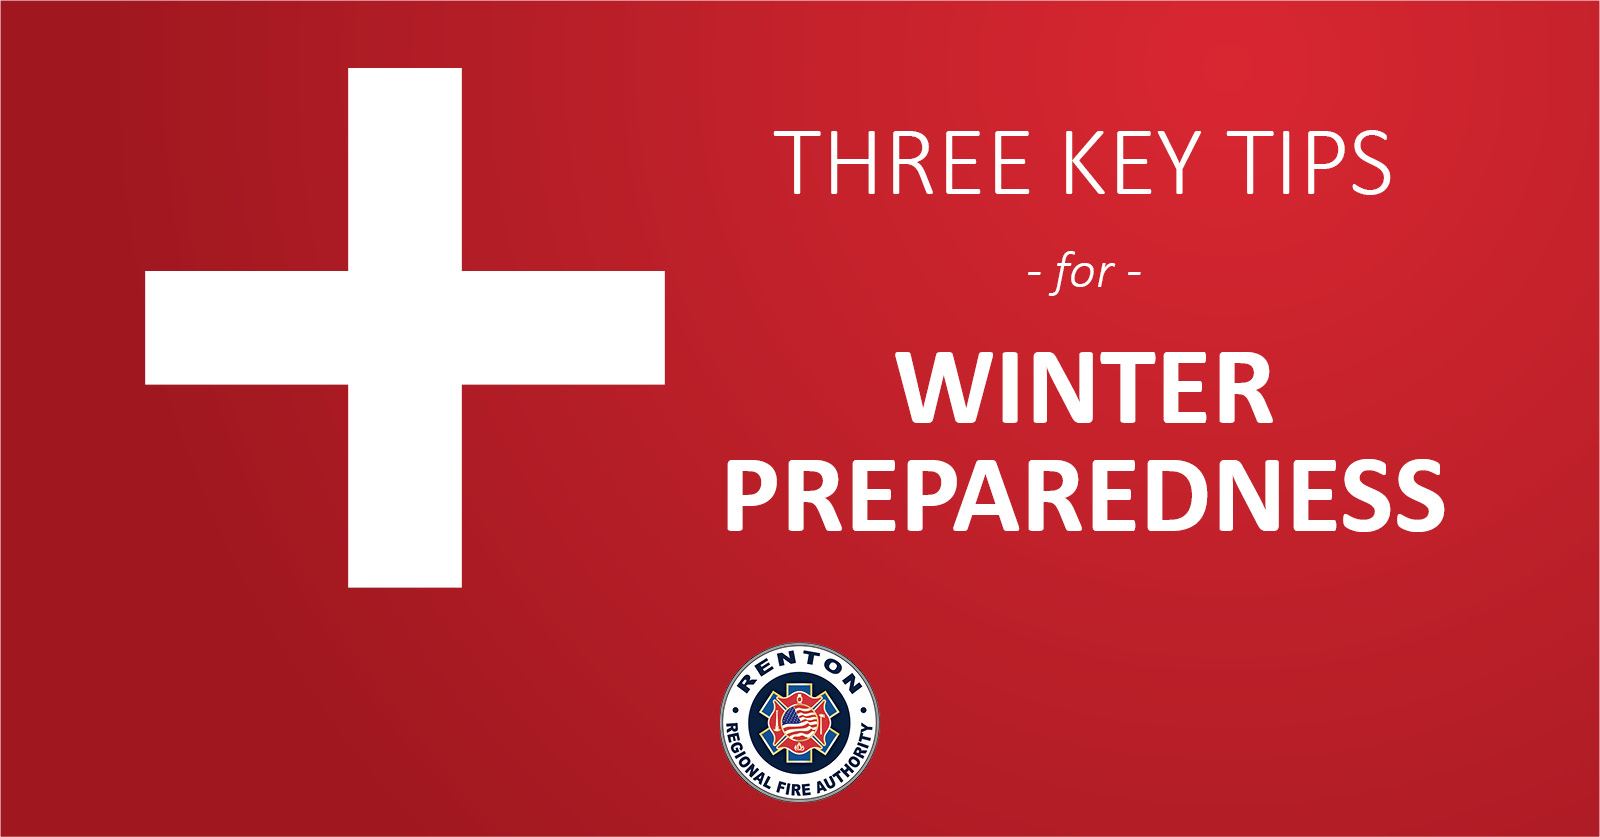 Three Key Tips for Winter Preparedness